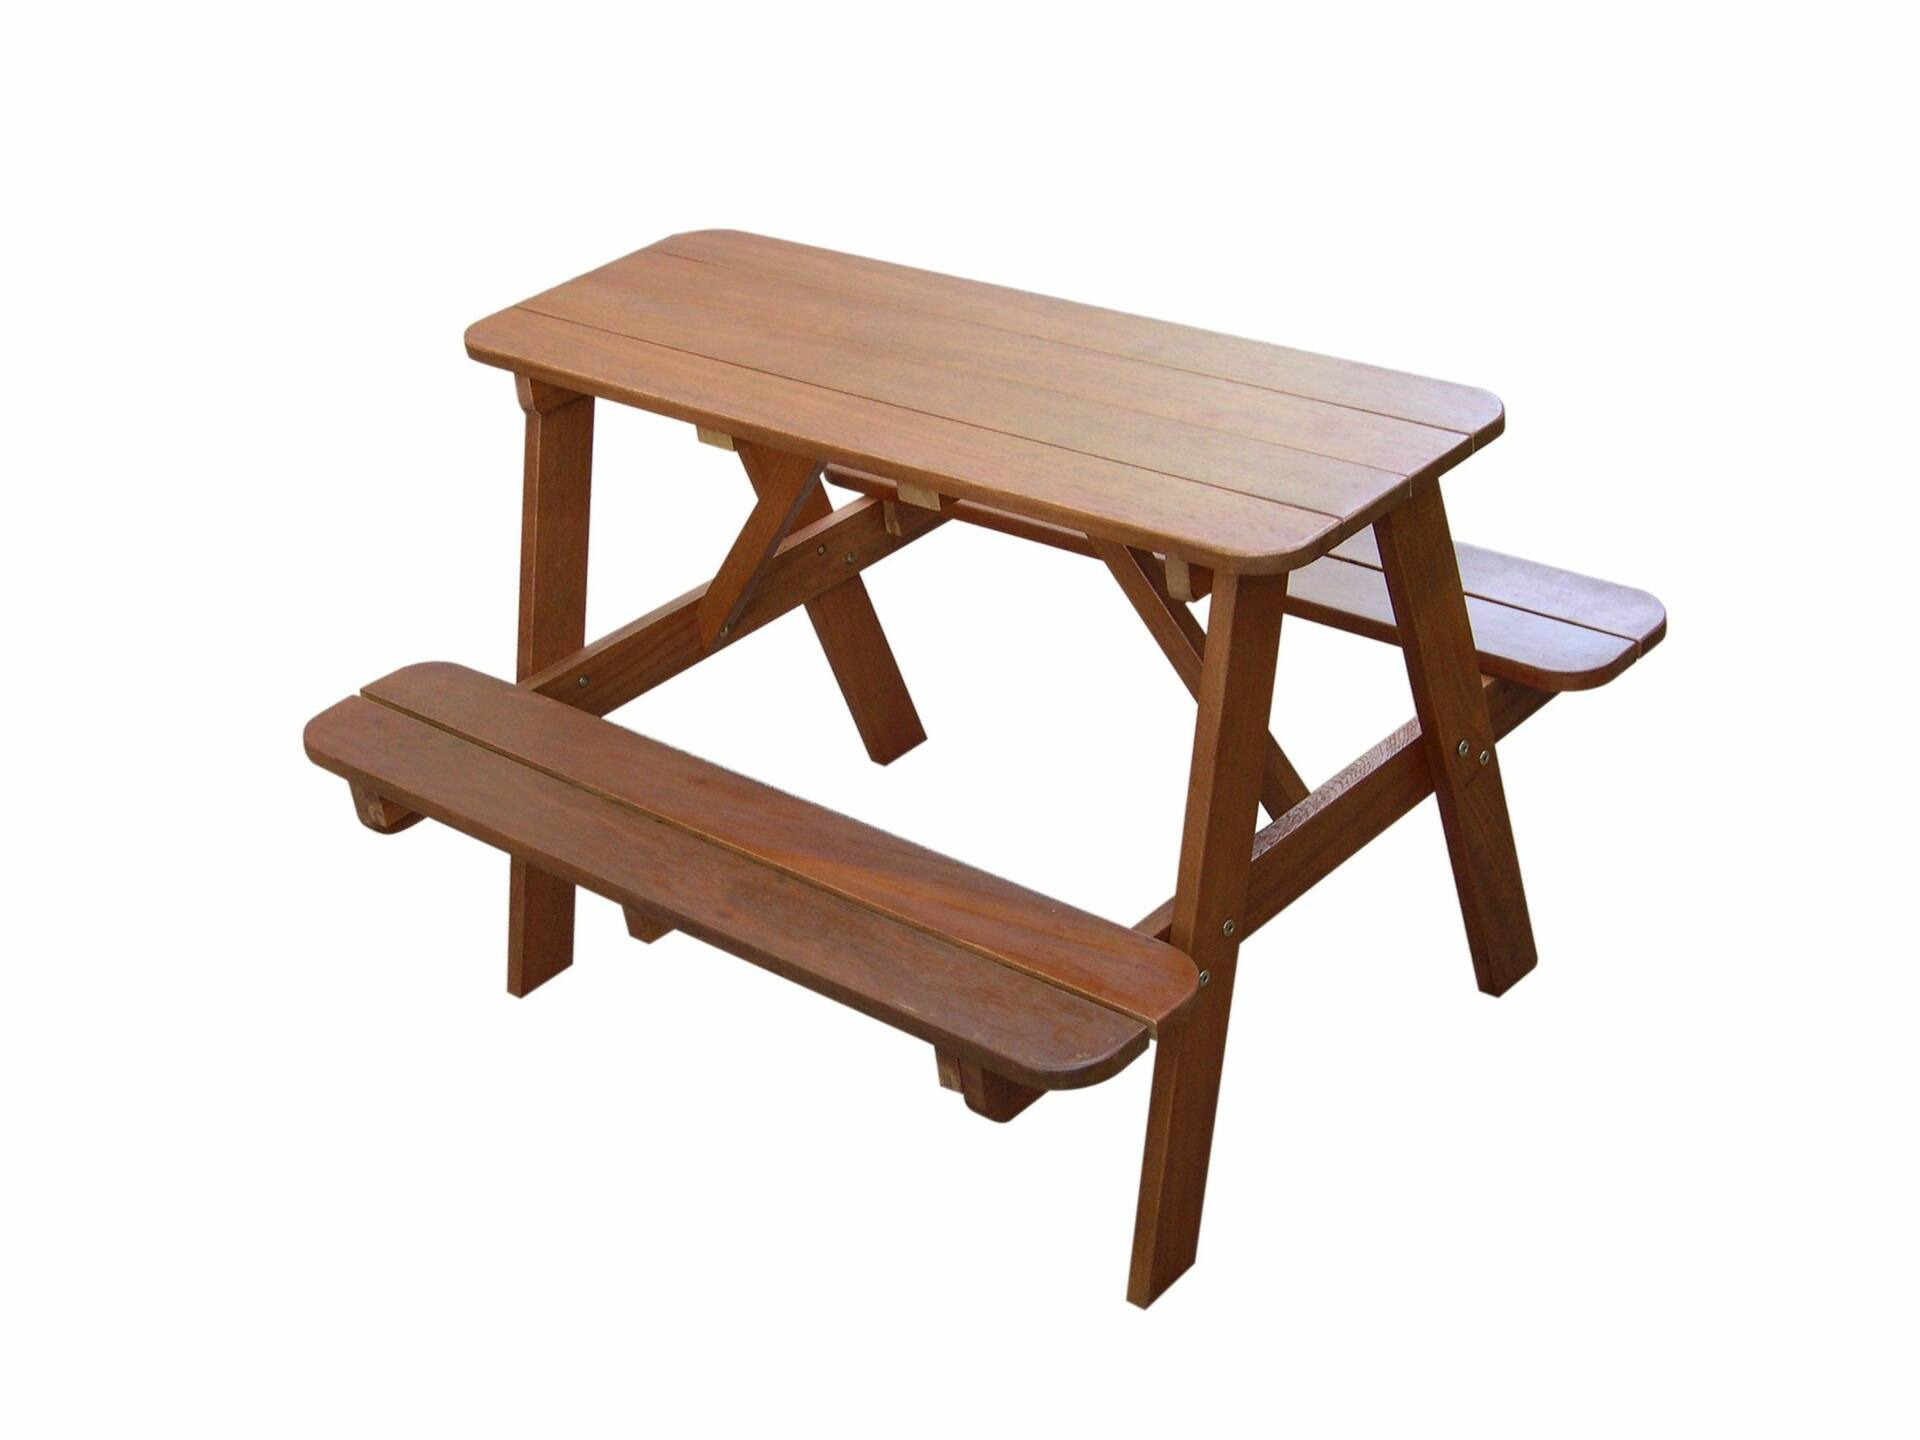 wood spin itm desk sturdy study pine s picnic prod durable new outdoor bench table kids children indoor